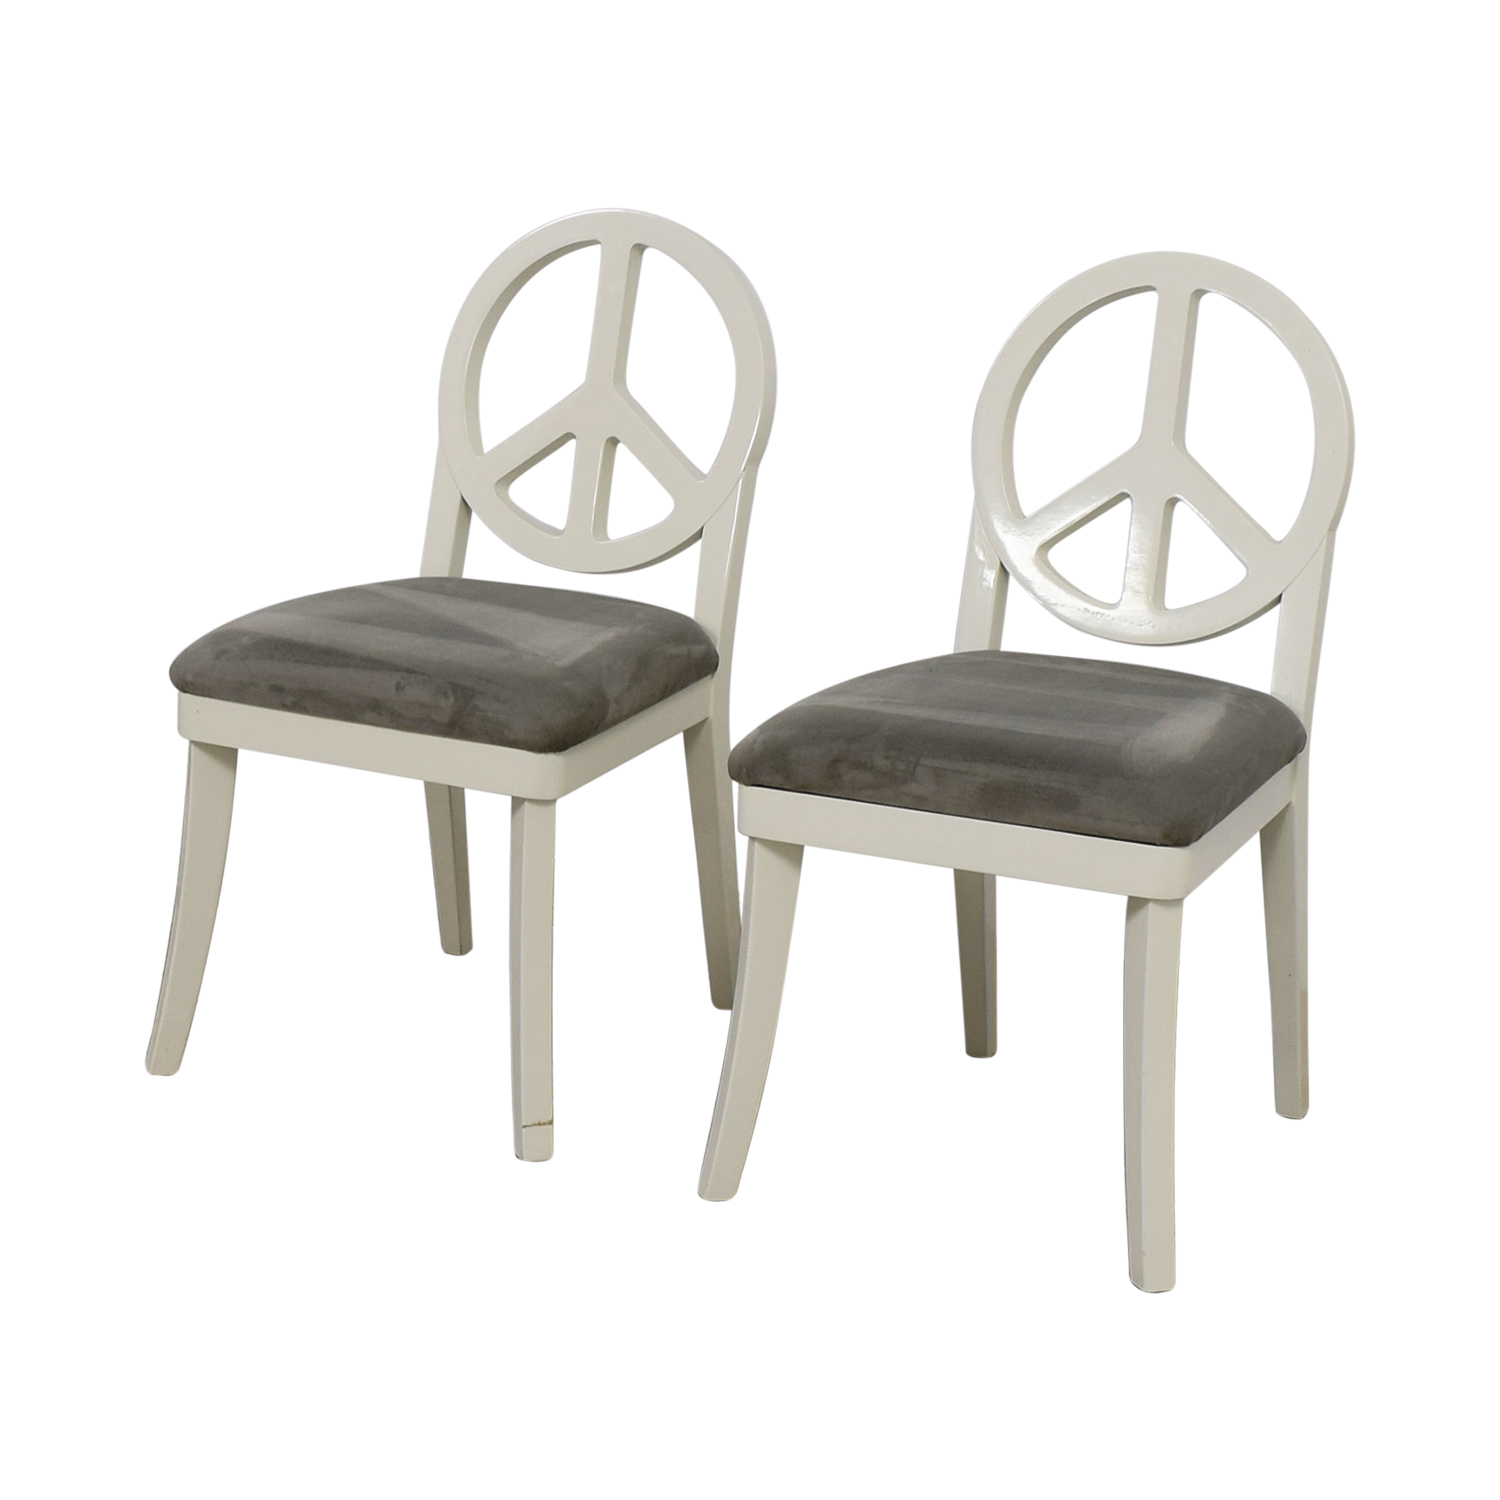 Merveilleux ... Happy Chic By Jonathan Adler Happy Chic By Jonathan Adler White And  Grey Peace Sign Accent ...